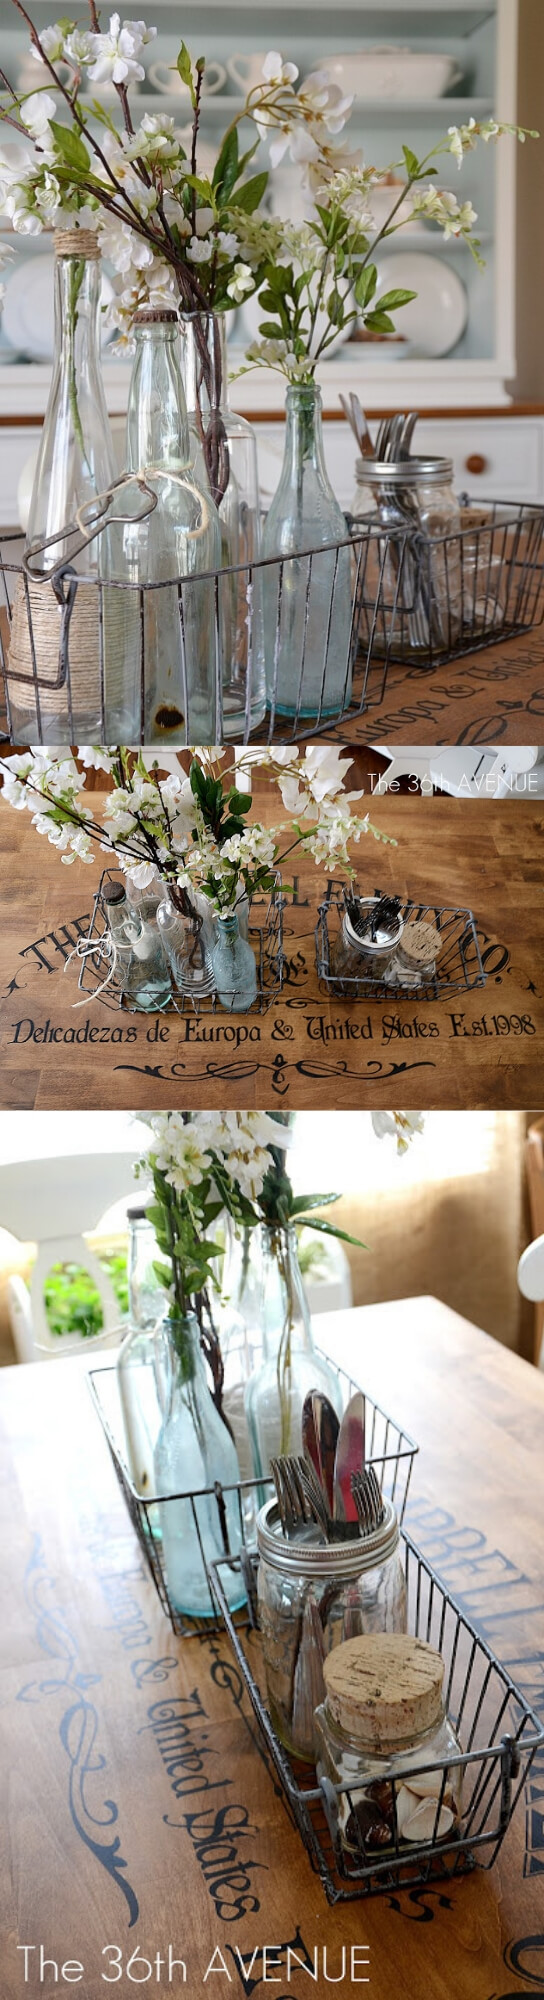 A table top with Sprigs of Flowers from Old Bottles | Stunning Farmhouse Dining Room Design & Decor Ideas